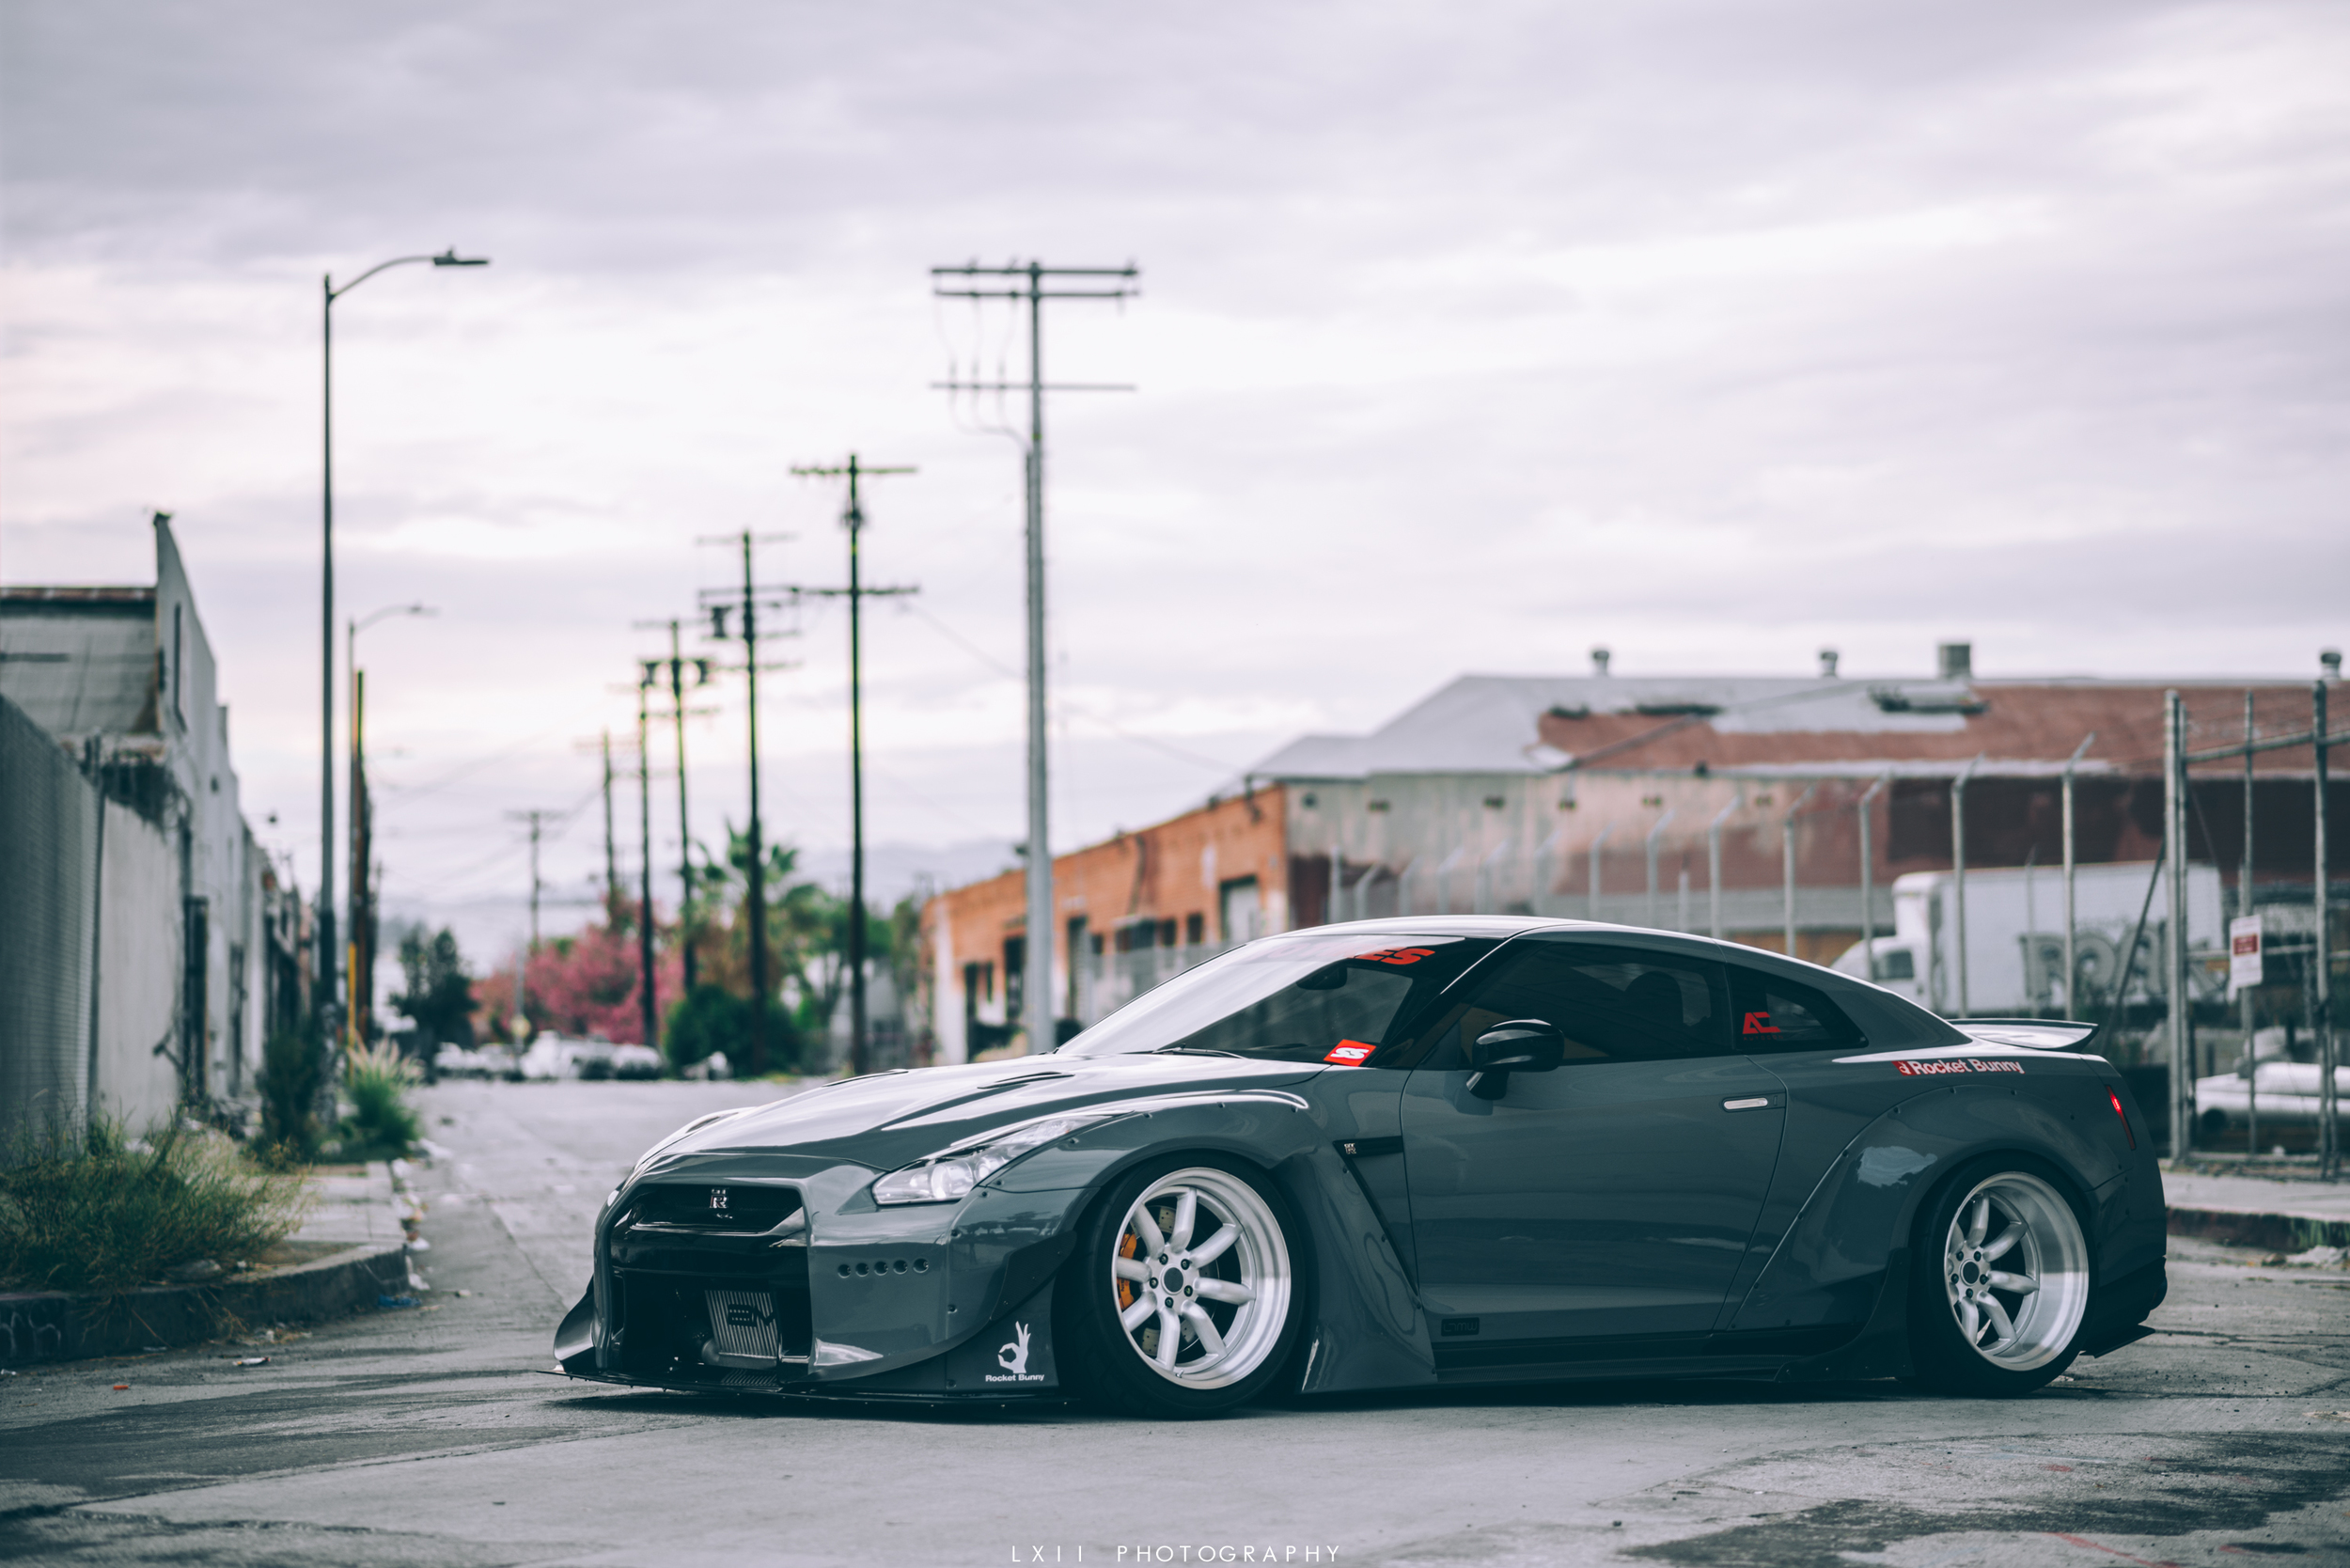 Steve's Rocket Bunny GTR | Autocon x Project-Definition x LXII Photography